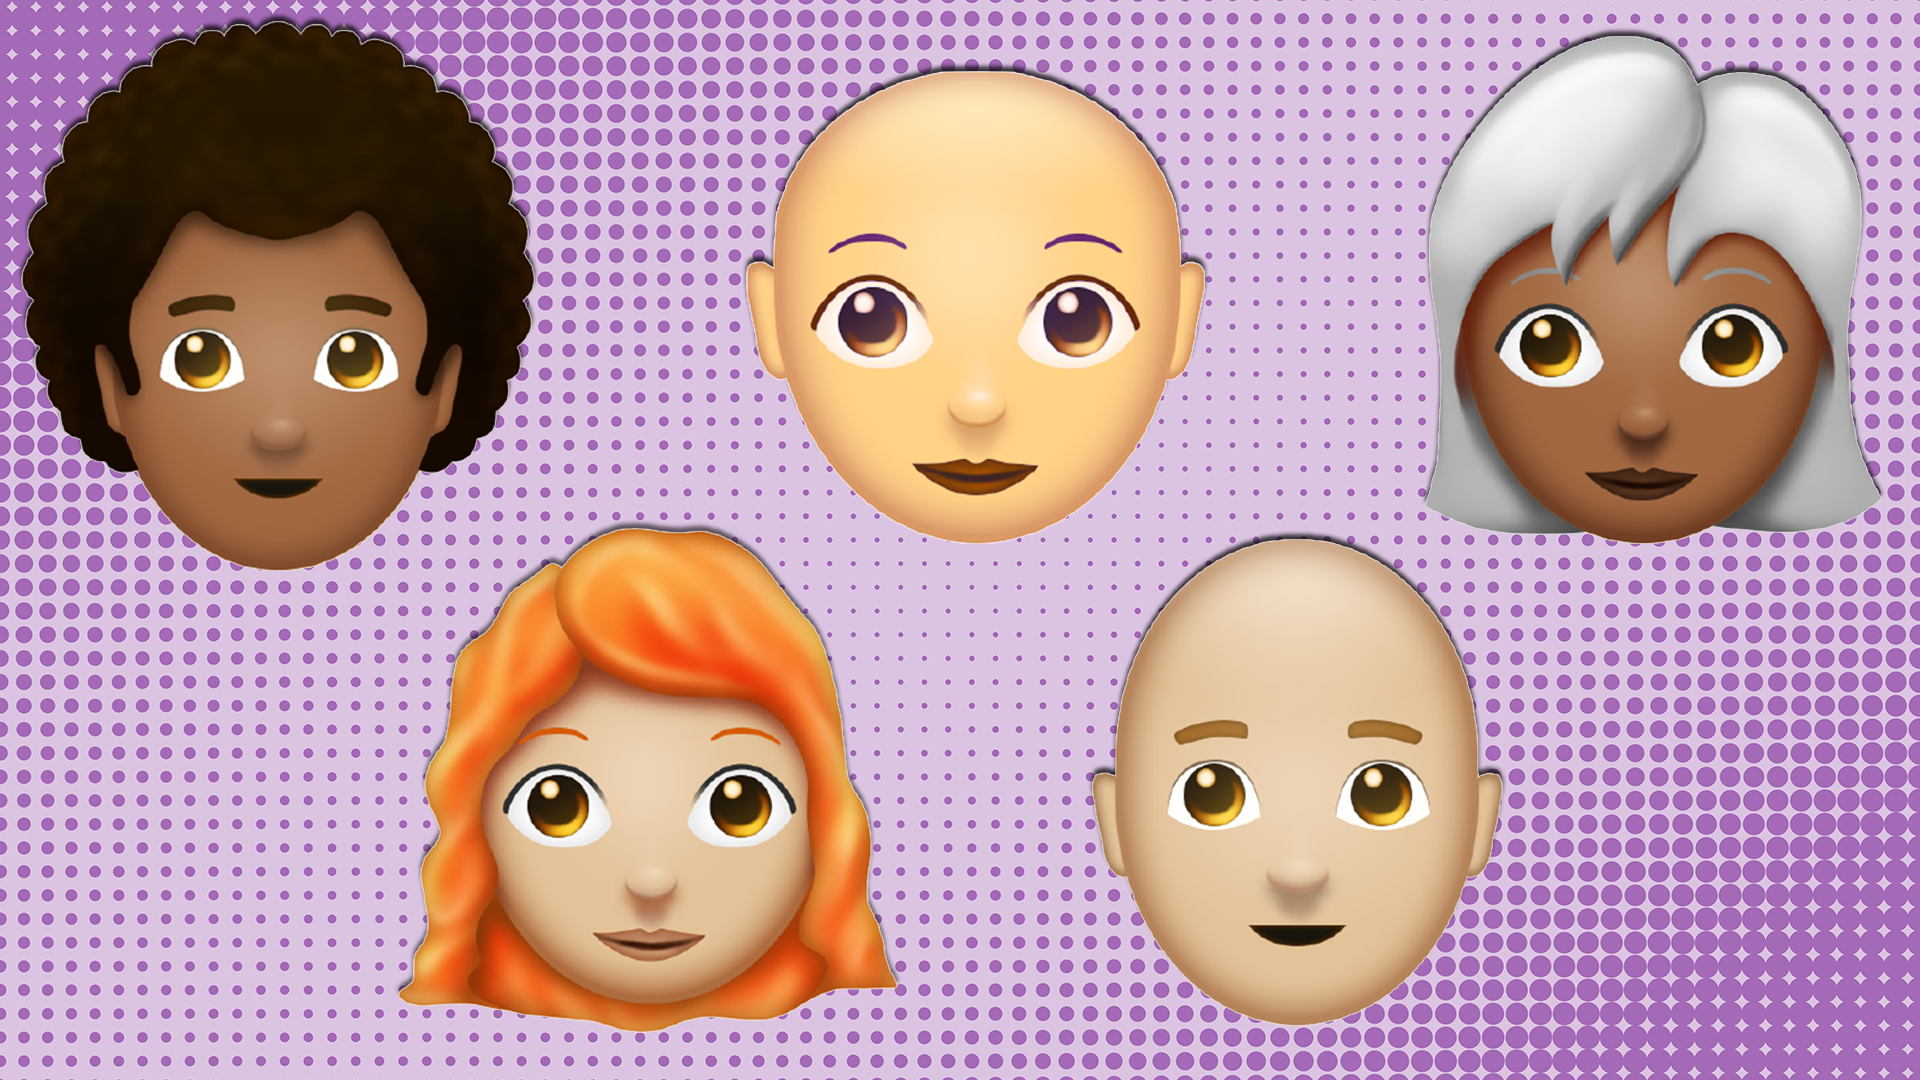 New redhead emojis arrive, along with other unique hair styles